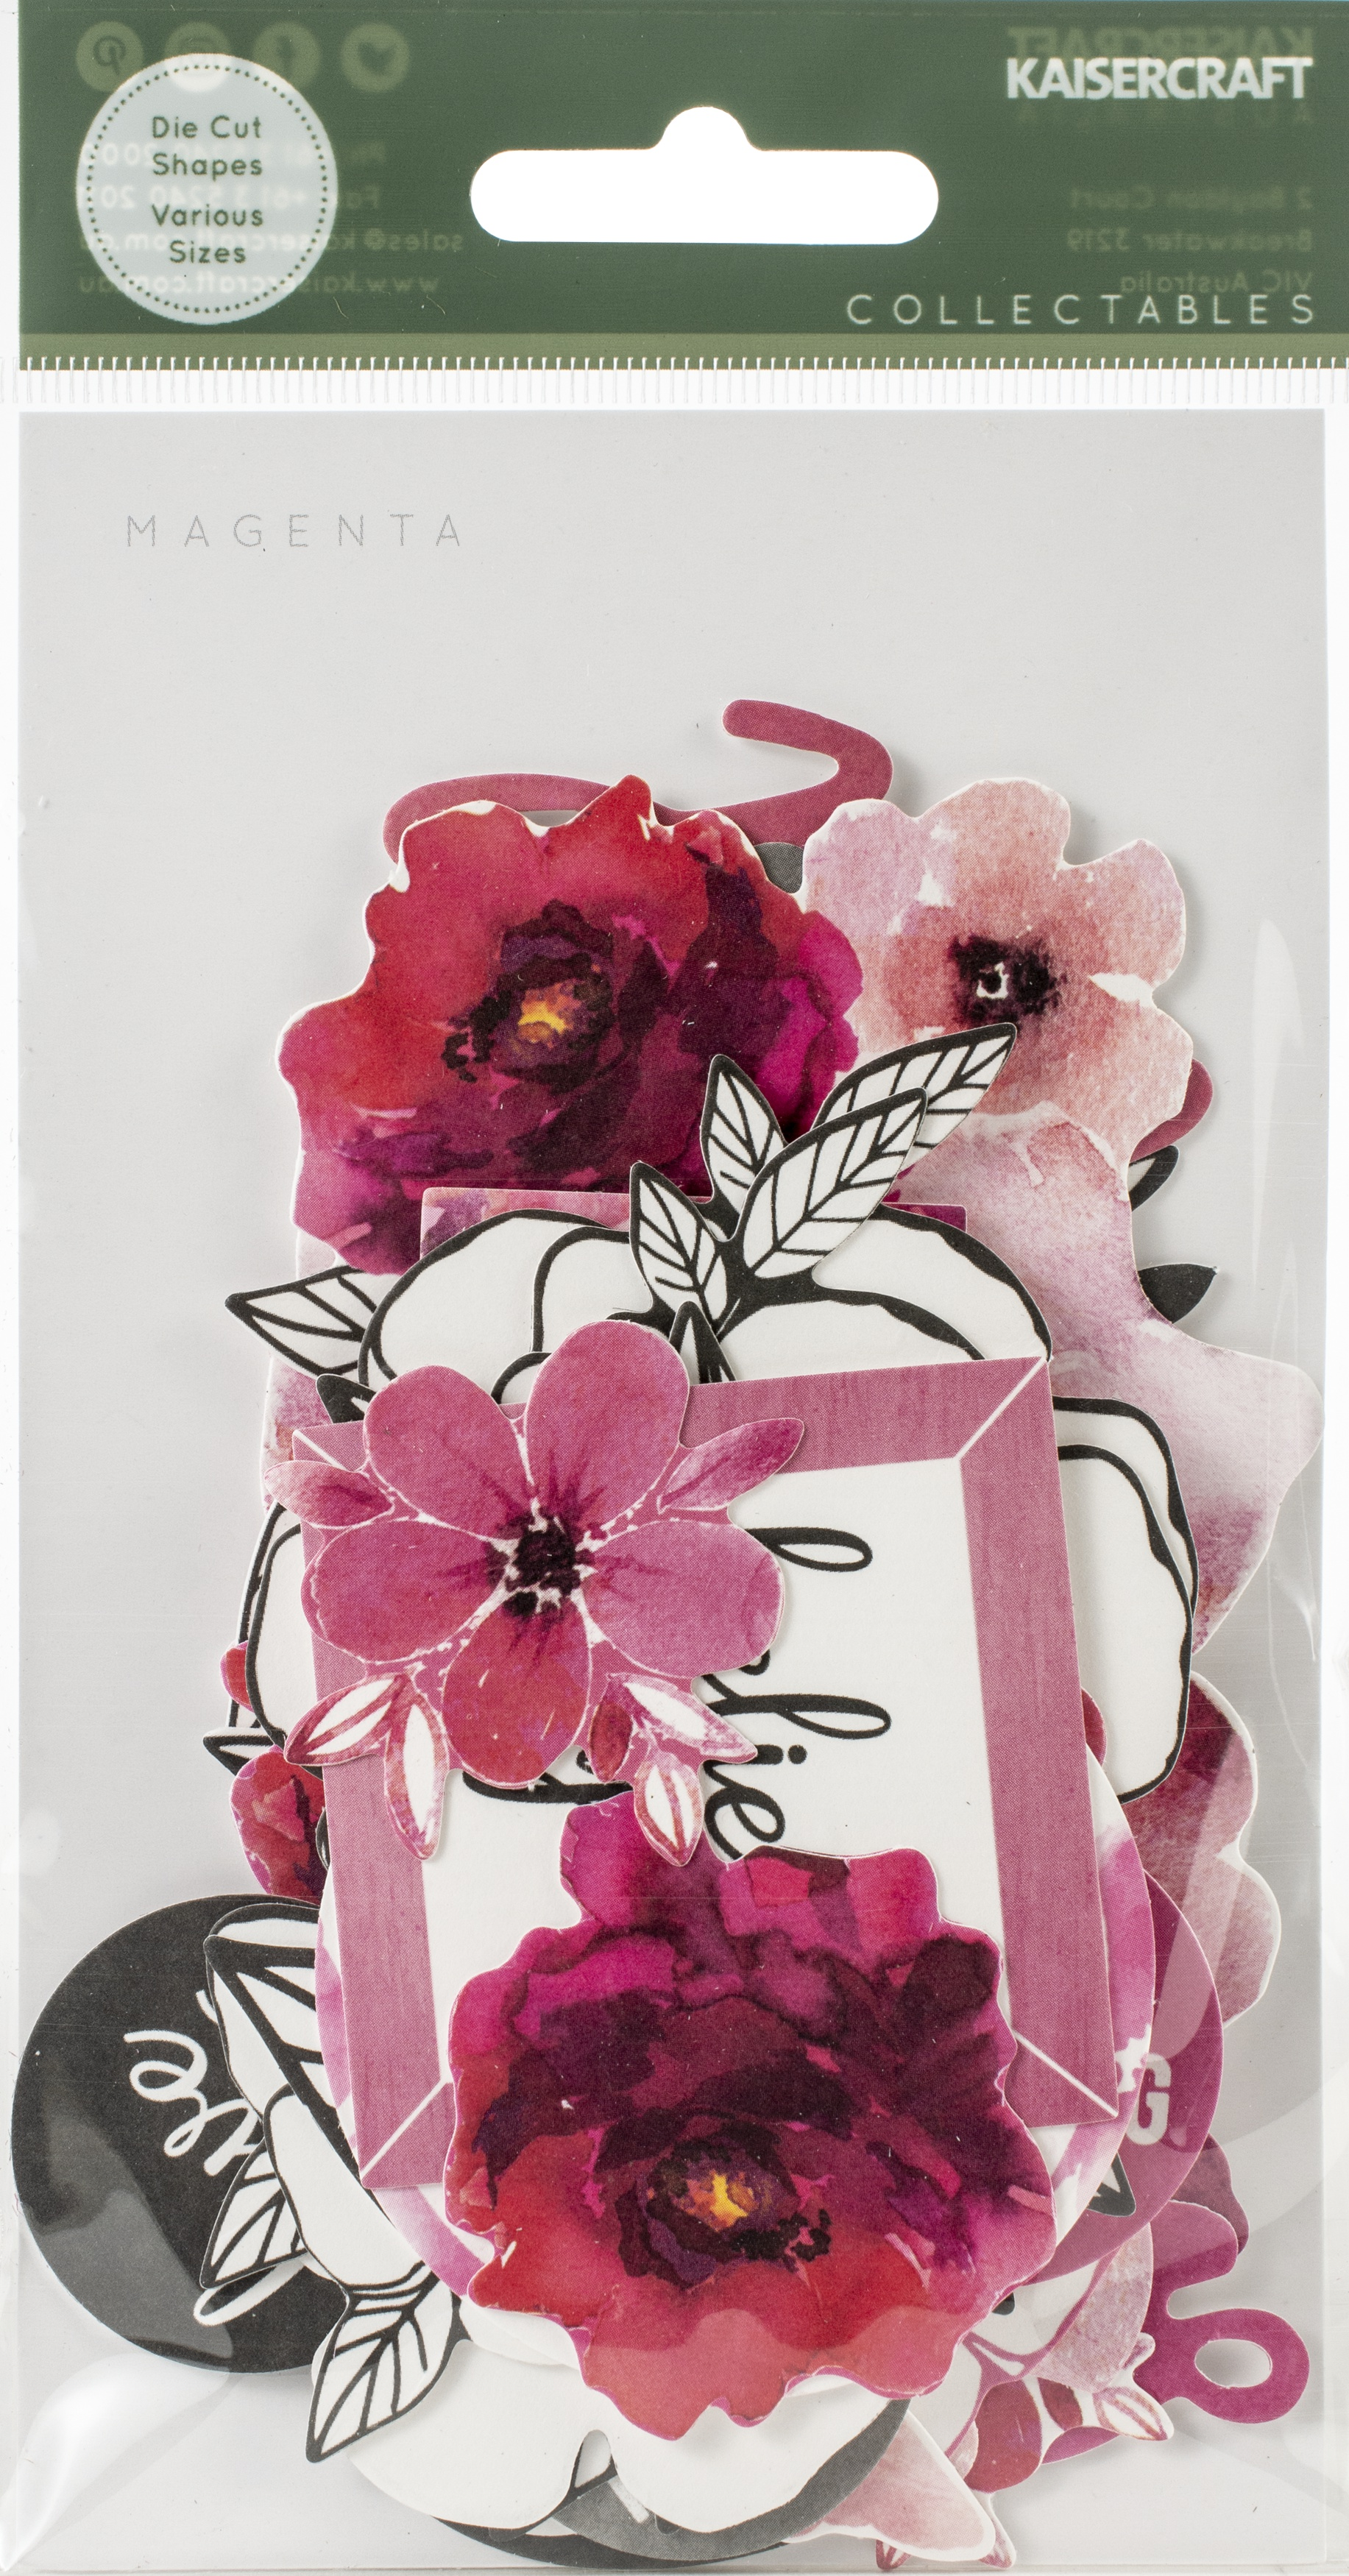 Kaisercraft Collectables Cardstock Die-Cuts-Magenta